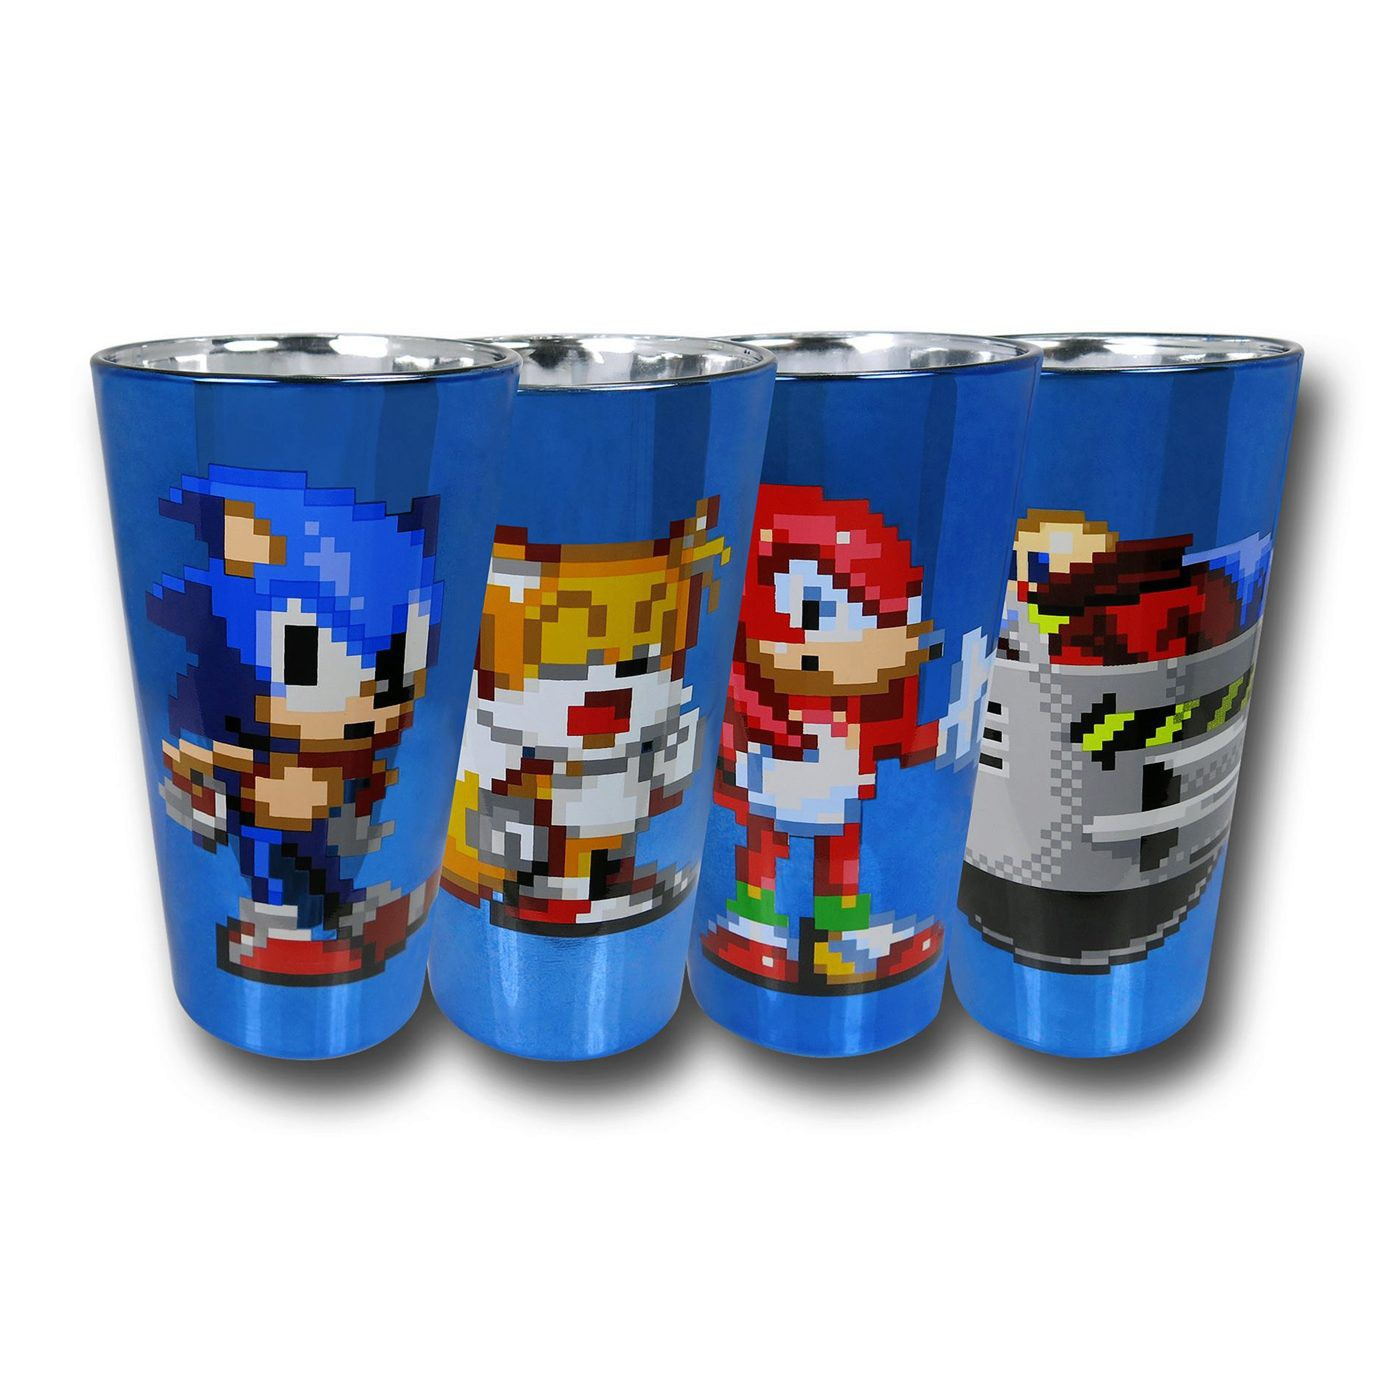 Sonic Aluminum Pint Glass 4-Pack